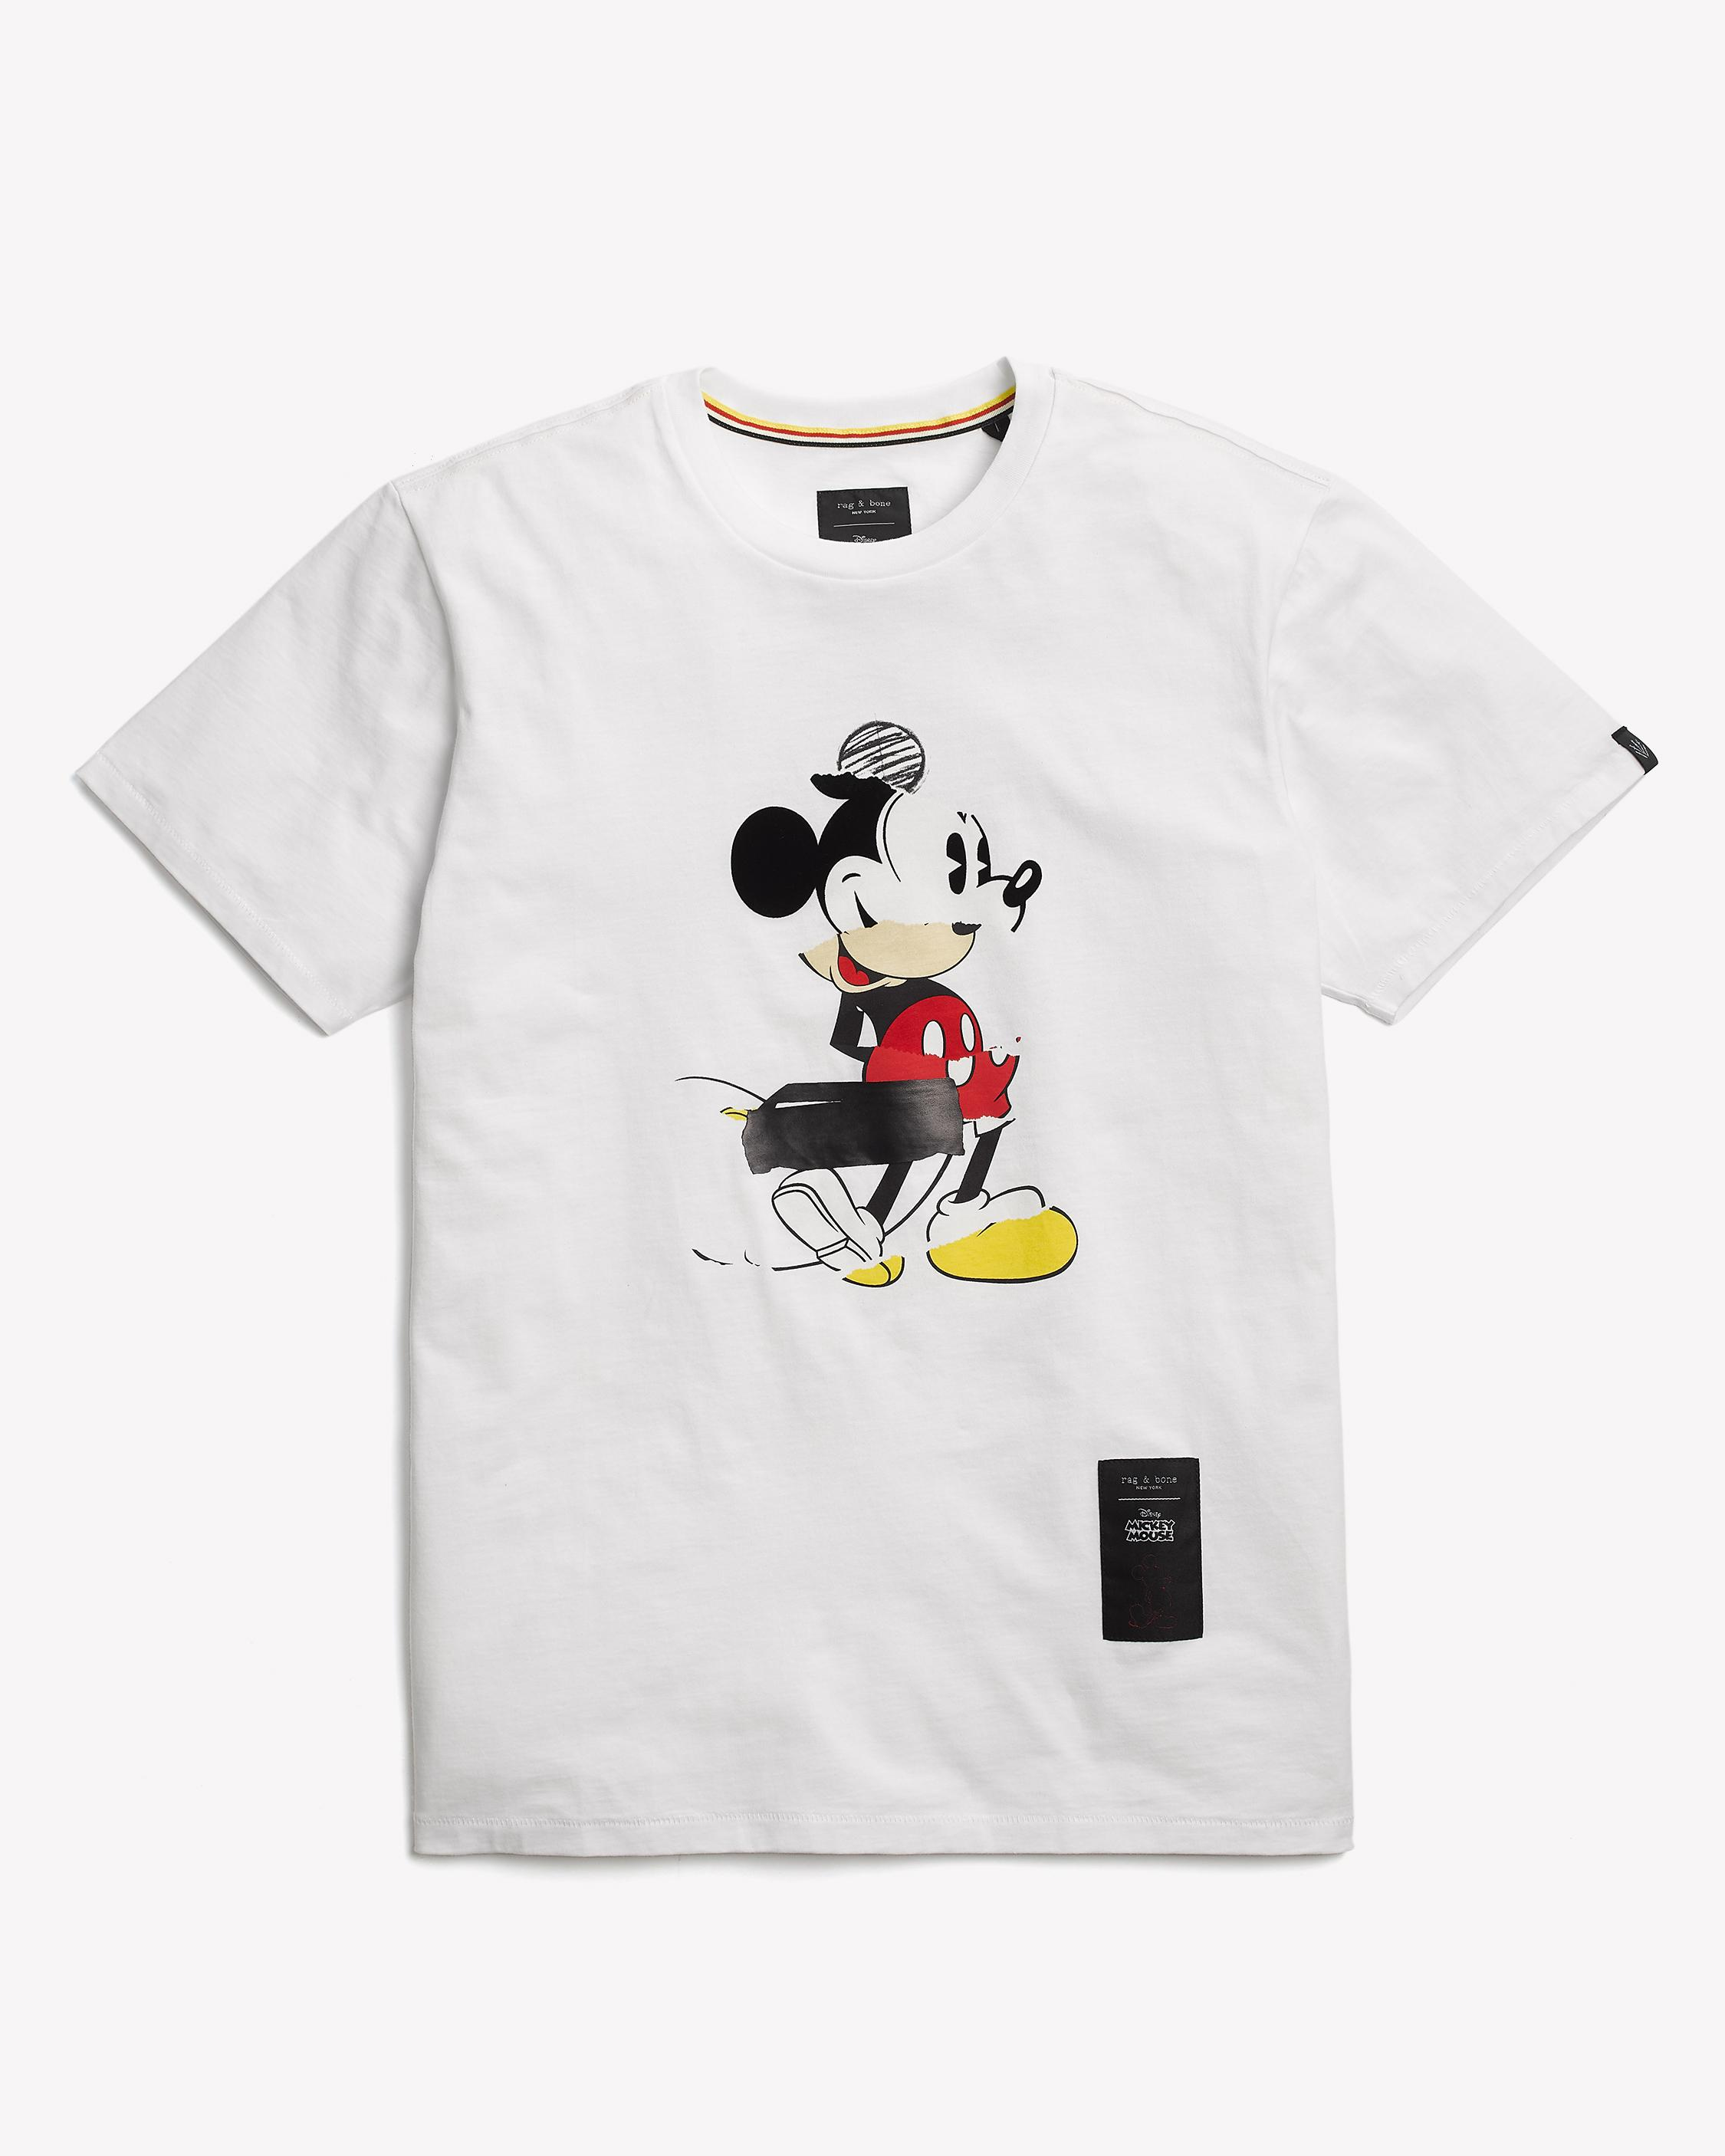 d4241b0f Mickey Collage Tee | Mickey Mouse Shop the Collection | rag & bone